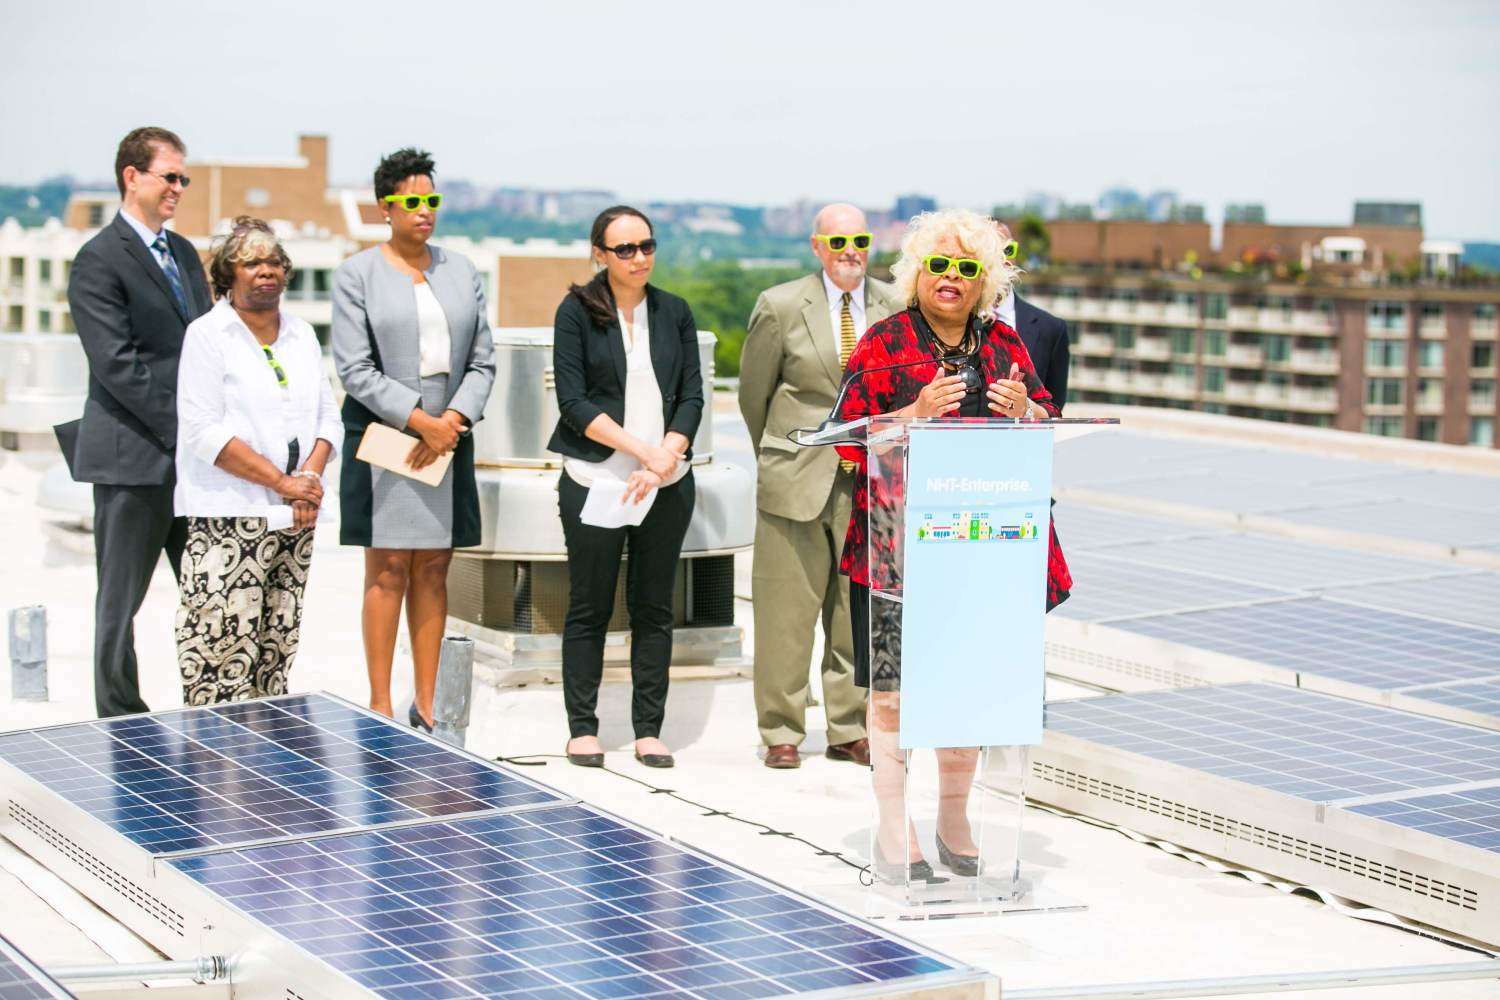 Financing supports the installation of solar power on affordable housing as was the case at Channel Square Apts, the largest privately-owned solar array in Wash. D.C..